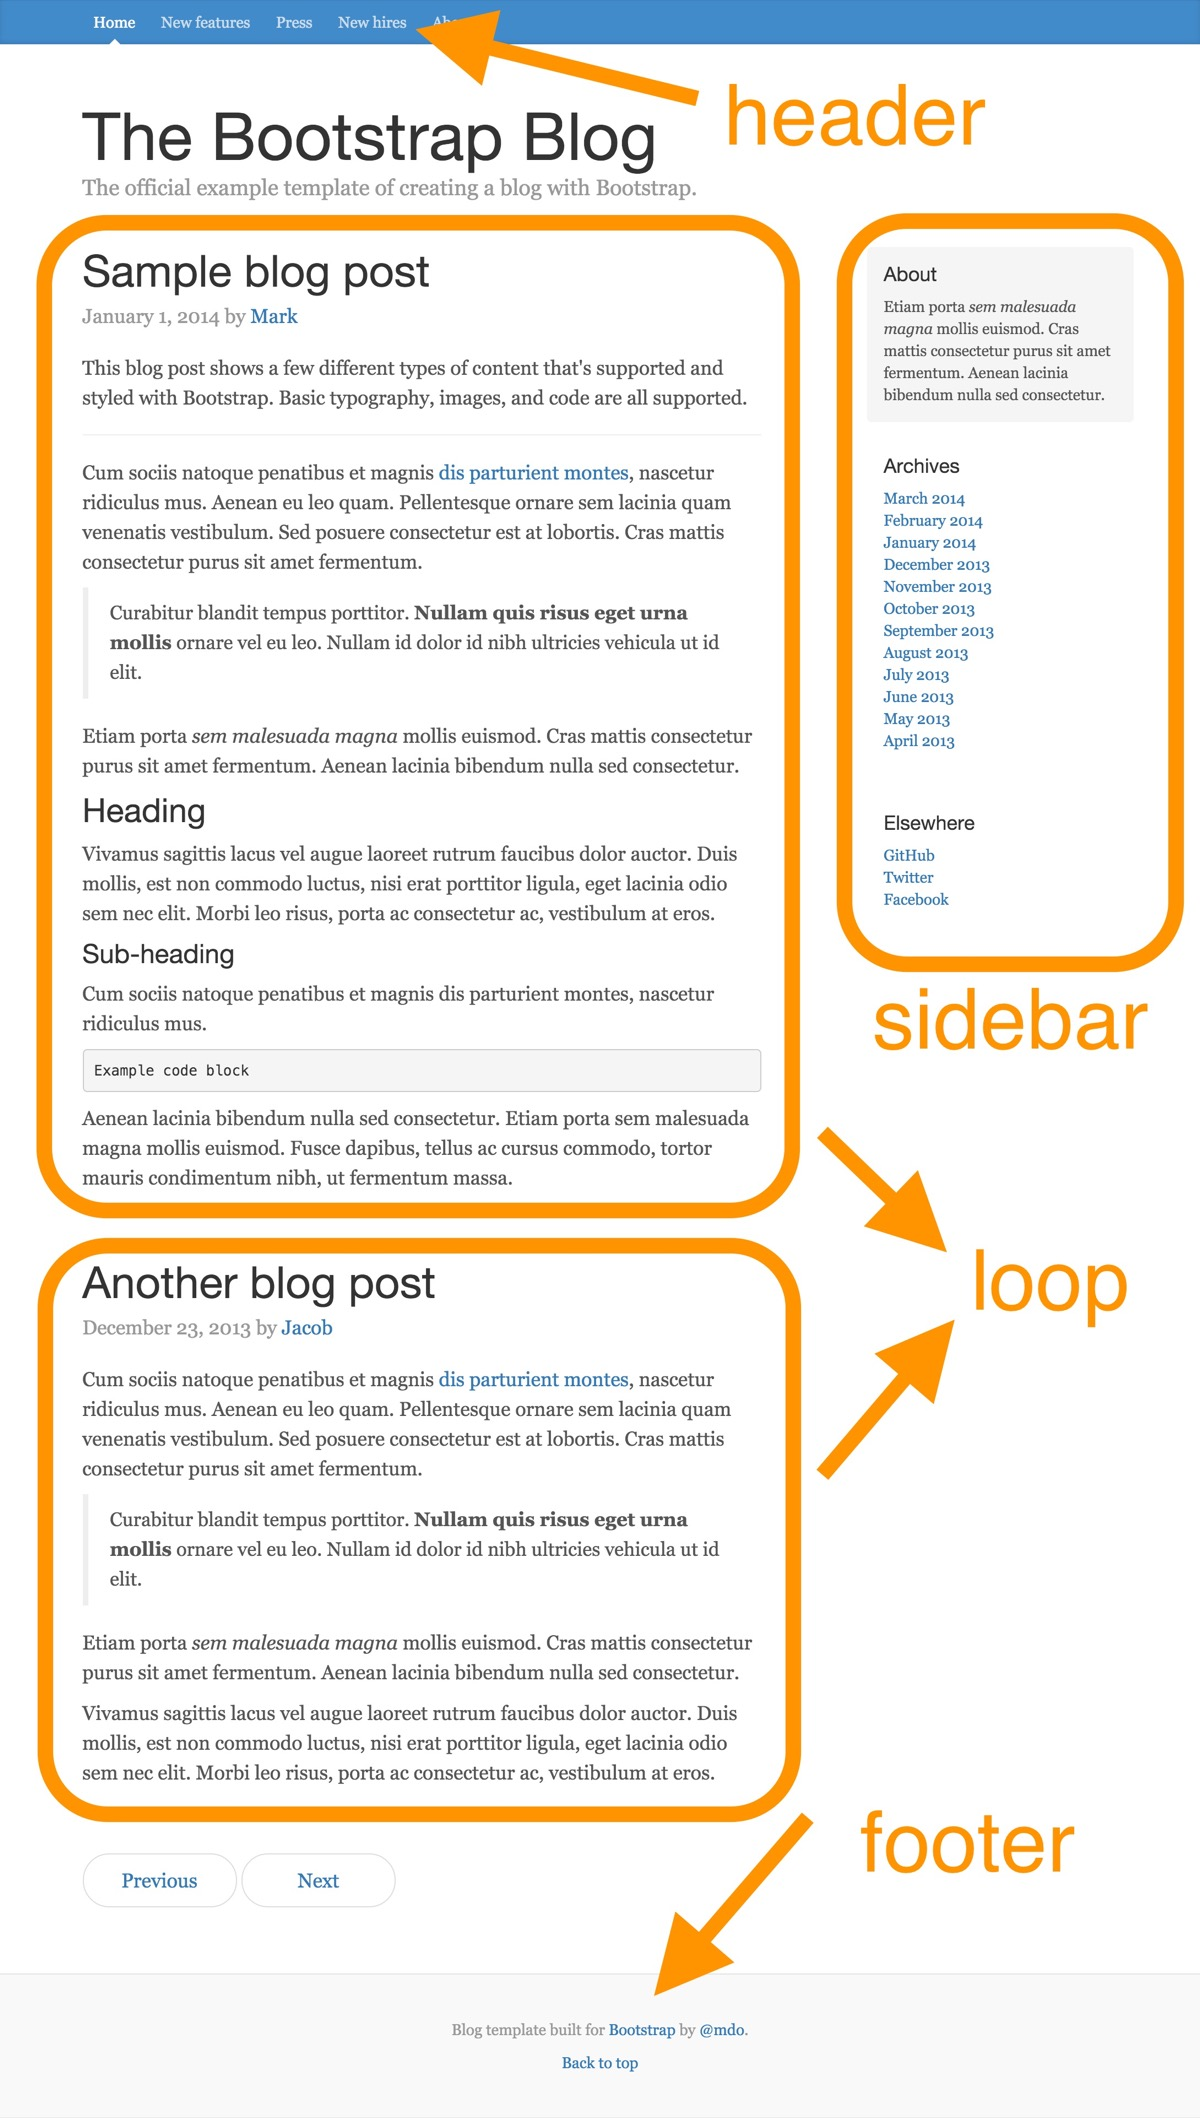 bootstrap3.3.6-example-blog.png.formatted